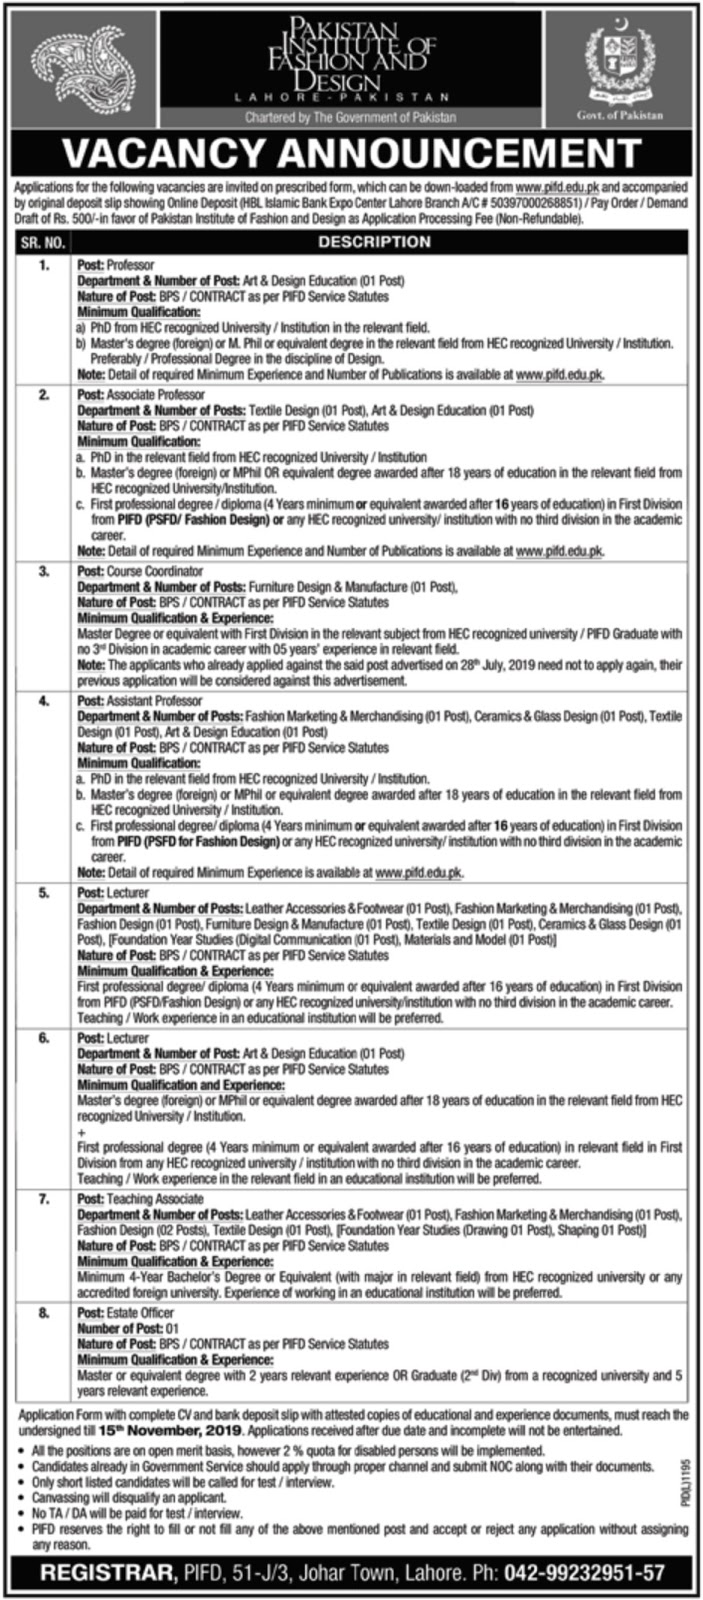 Pakistan Institute of Fashion and Design Lahore Jobs 2019